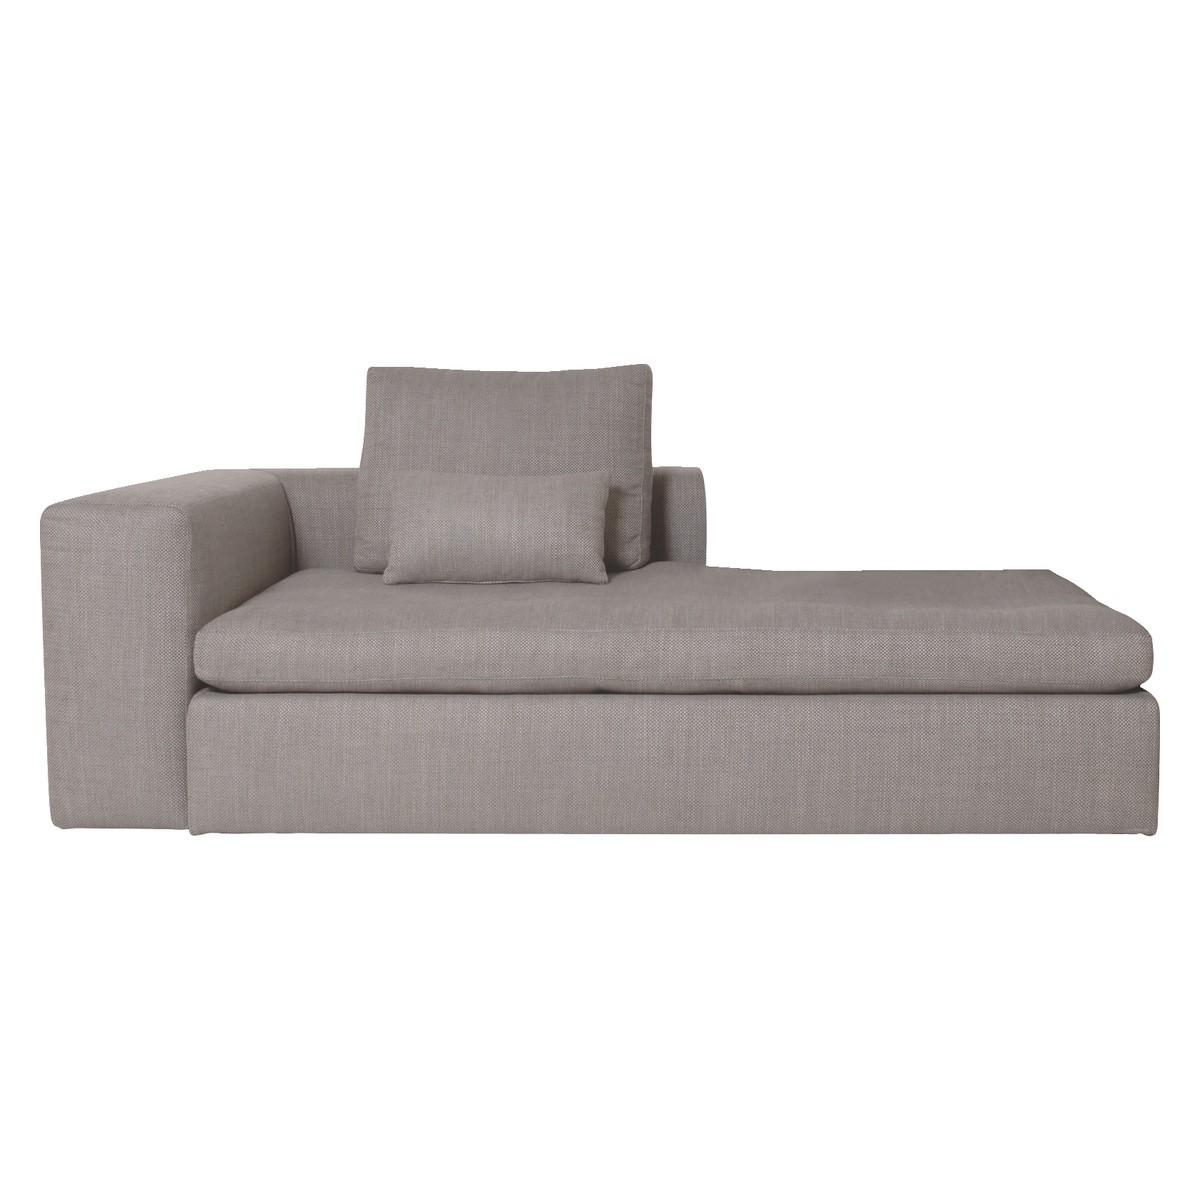 20 best ideas chaise longue sofa beds sofa ideas for Buy chaise longue